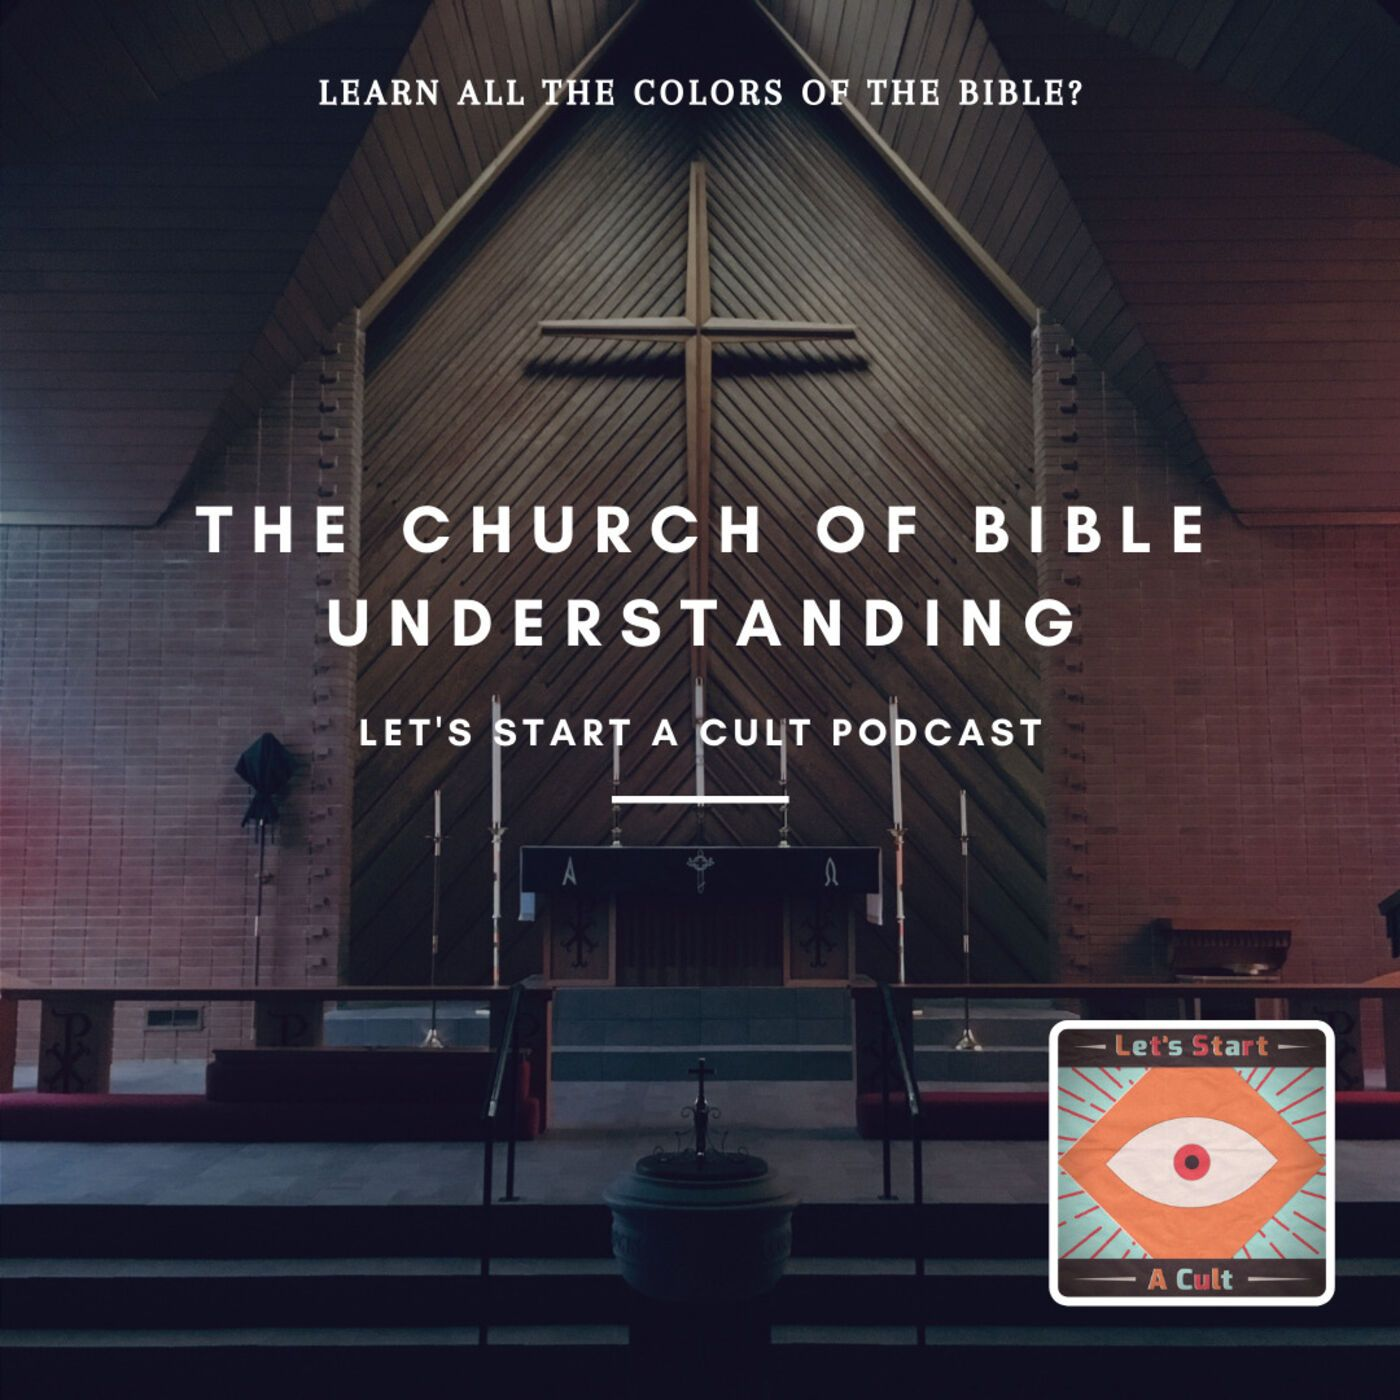 The Church of Bible Understanding